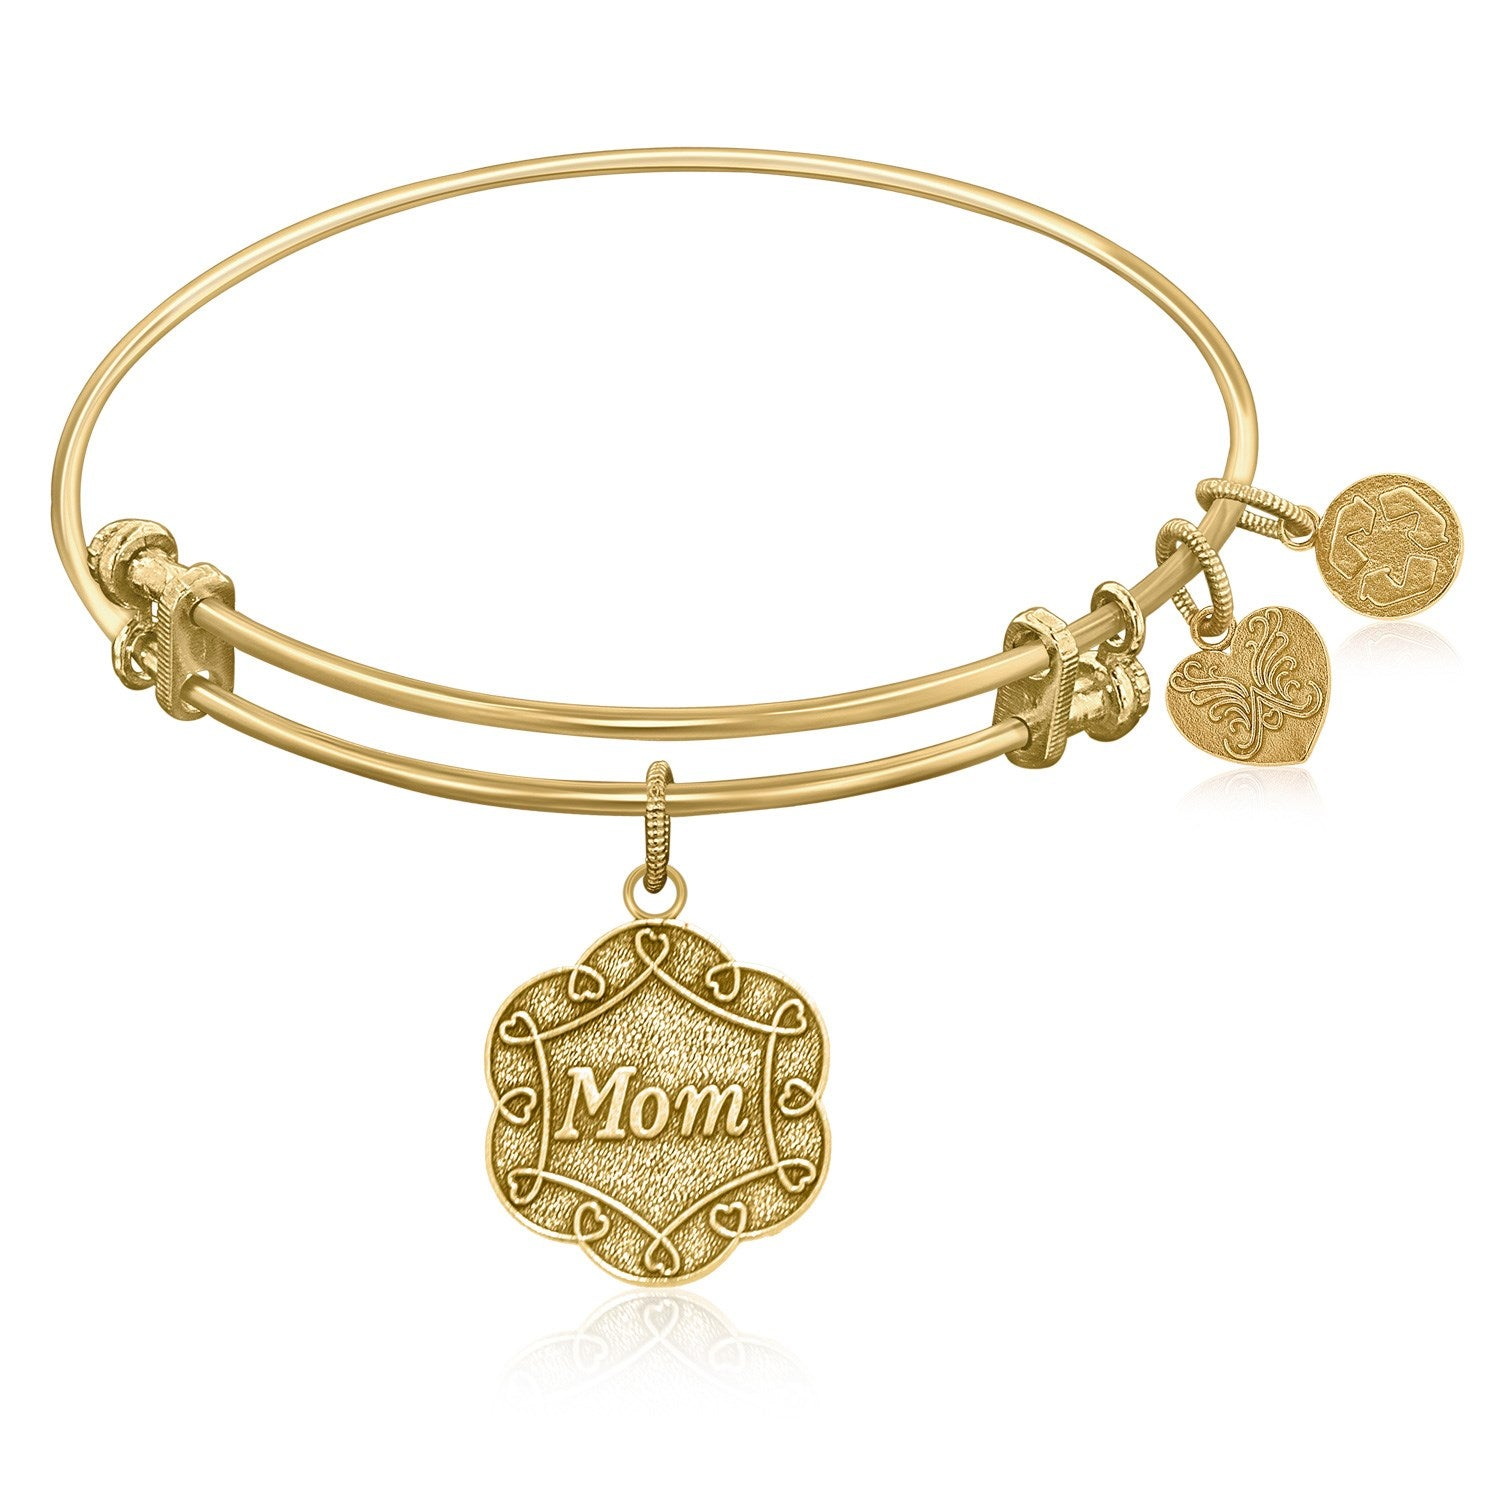 Expandable Bangle in Yellow Tone Brass with Mom Symbol